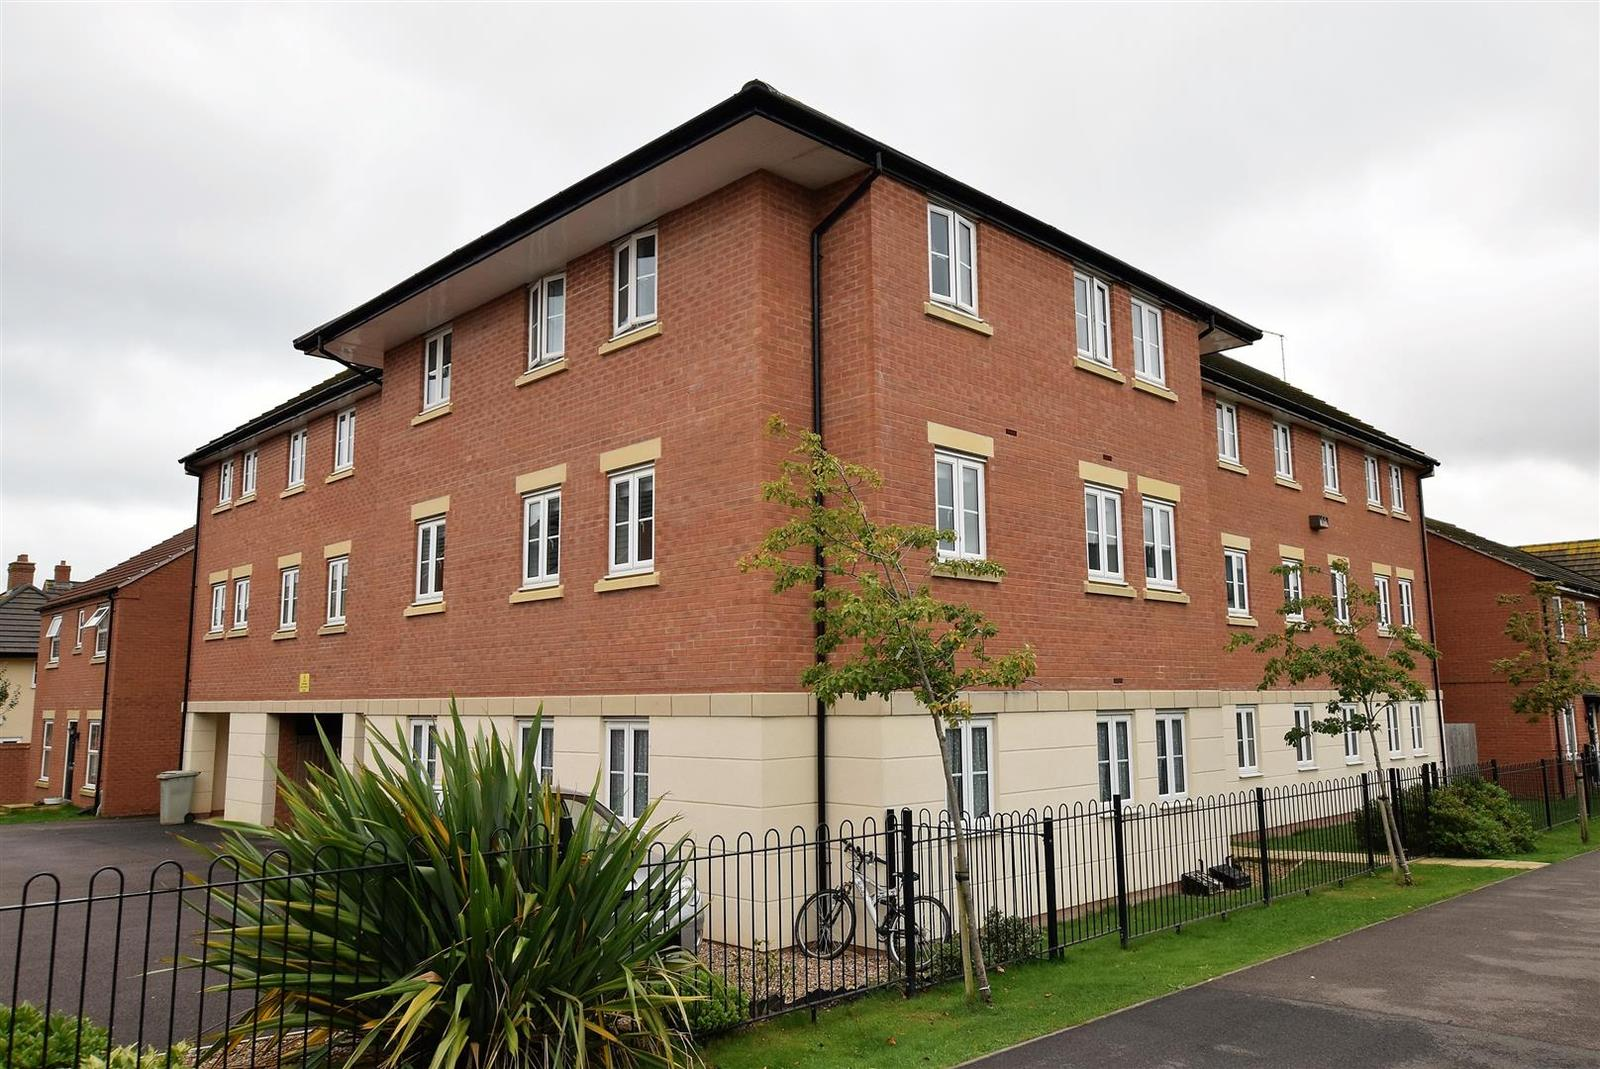 2 Bedrooms Apartment Flat for sale in John Clare Close, Oakham